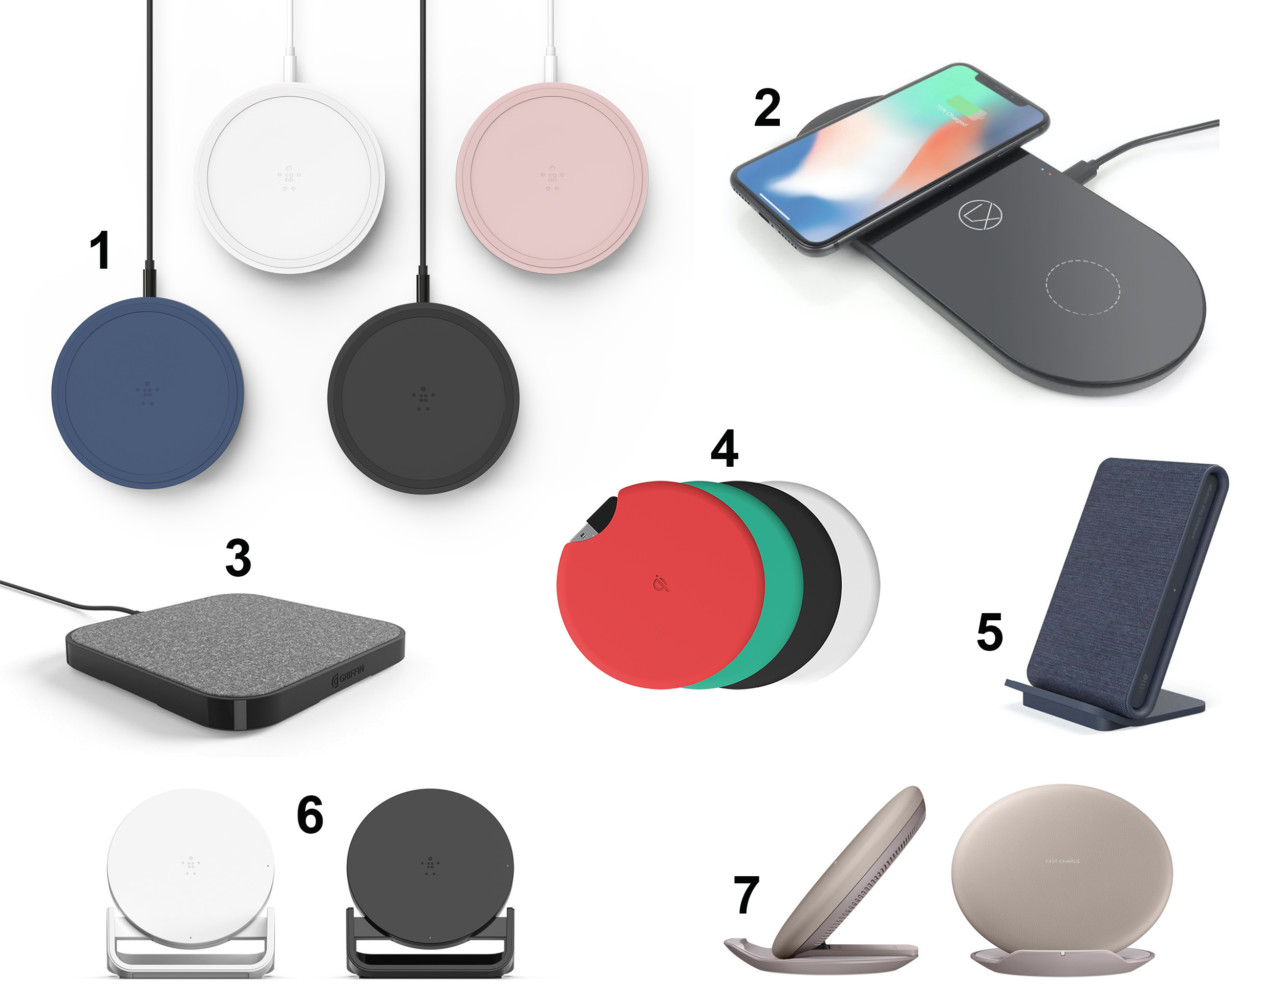 Modern Qi Wireless Chargers Banish Cables From the Desk